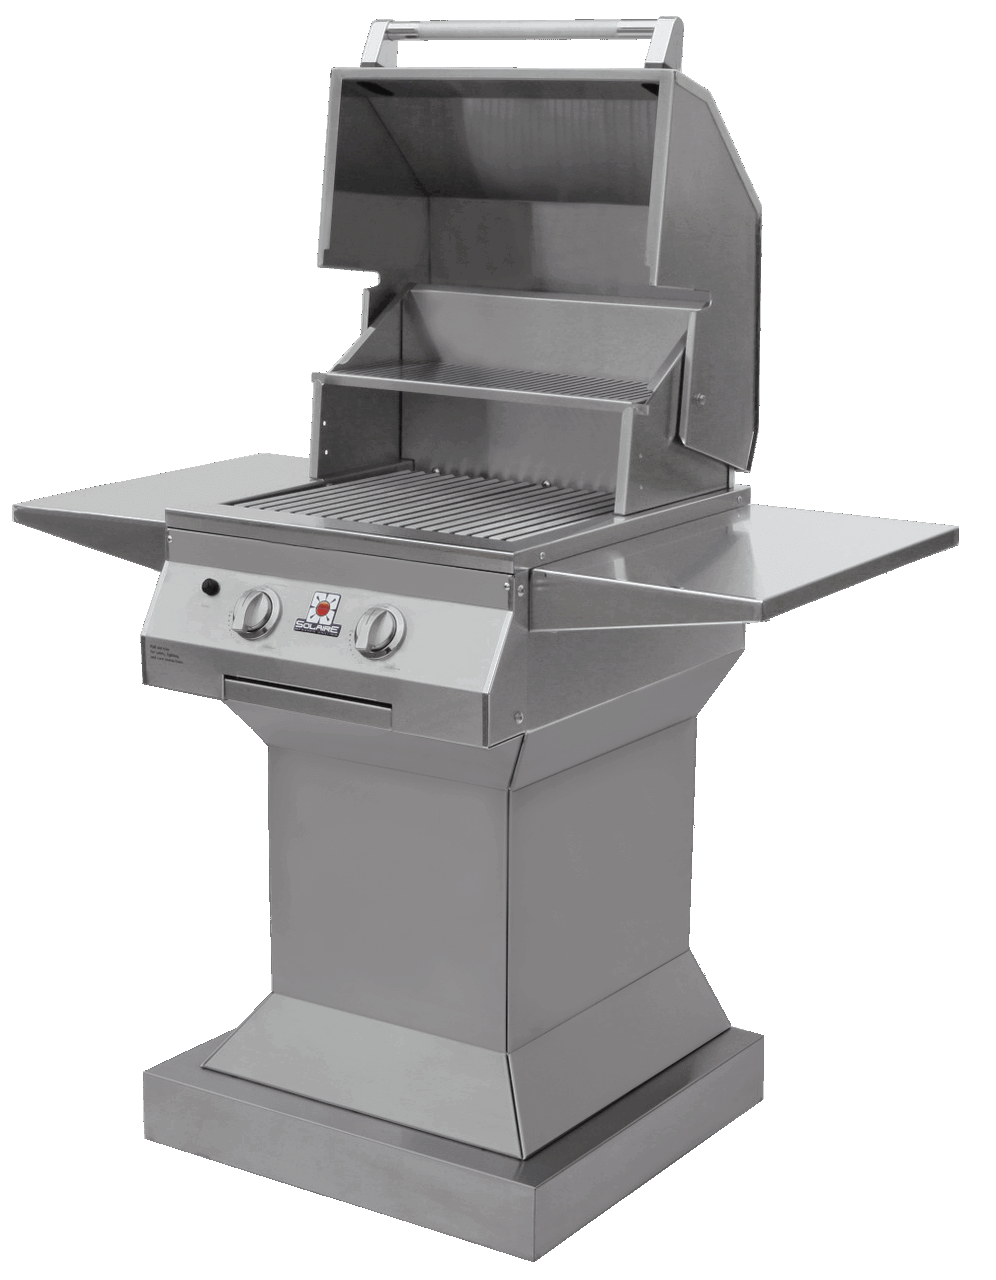 Solaire 21 XL Grill, Angular Pedestal, Front View, Hood Up, Shelves Up